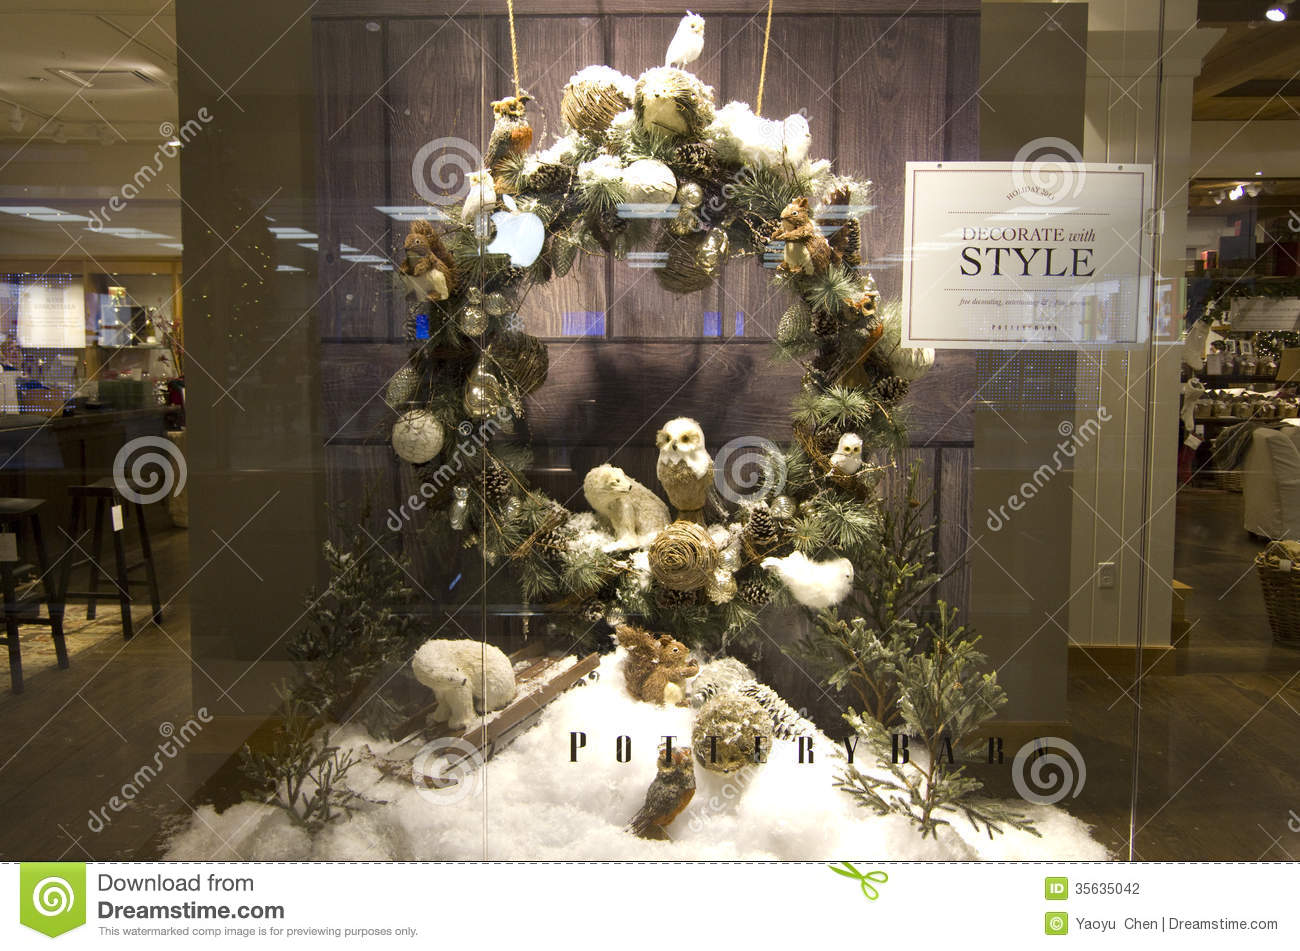 Deco Store Thanksgiving Christmas Decorations Home Deco Store Window